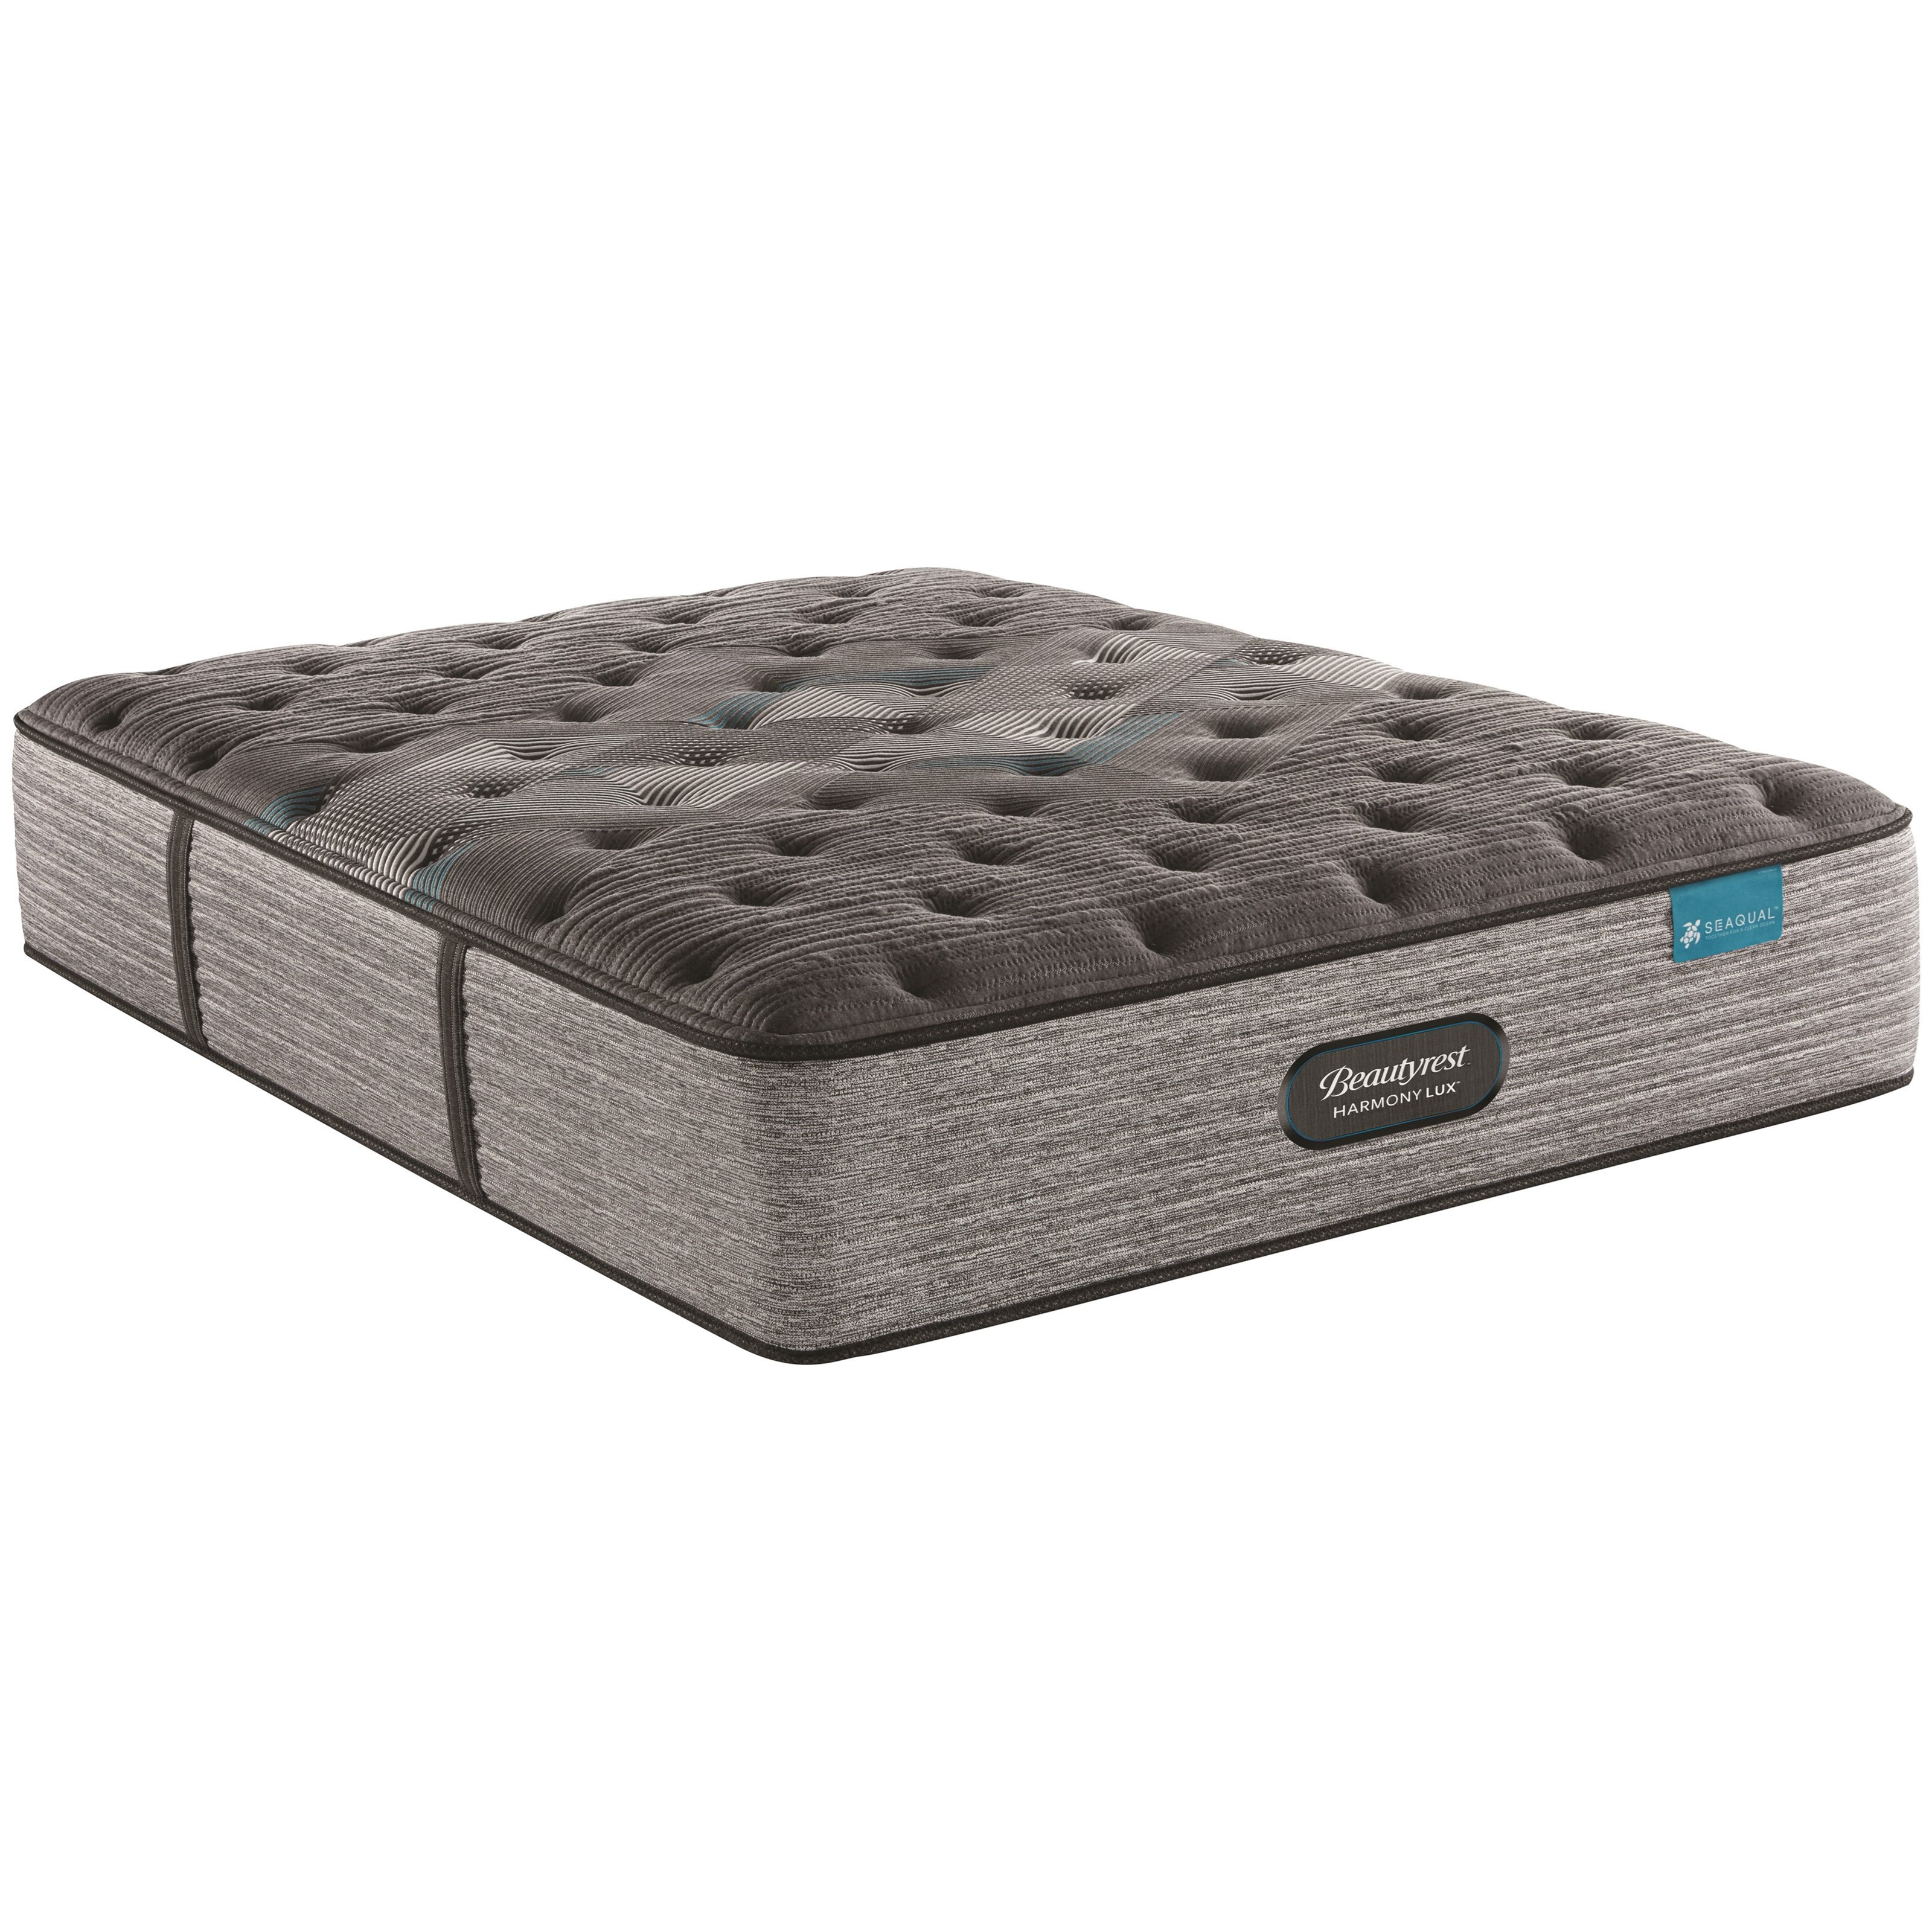 "Diamond Series Medium Full 14 3/4"" Medium Firm Premium Mattress by Beautyrest at Rooms and Rest"